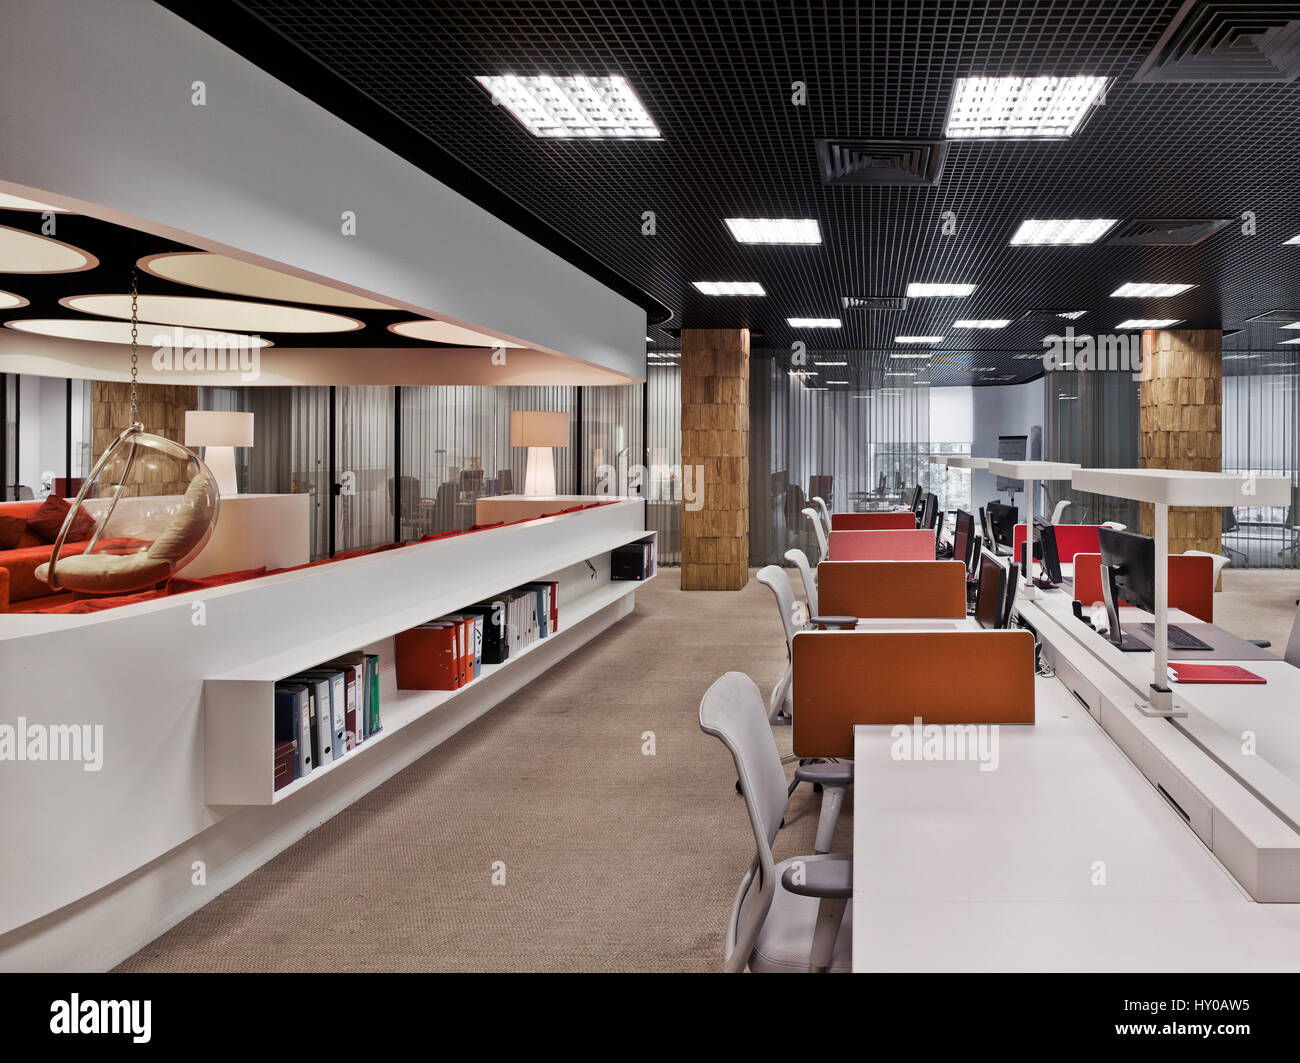 Interior Designers Working Conditions moscow, interior, office, working, design, decor, modern,workplace